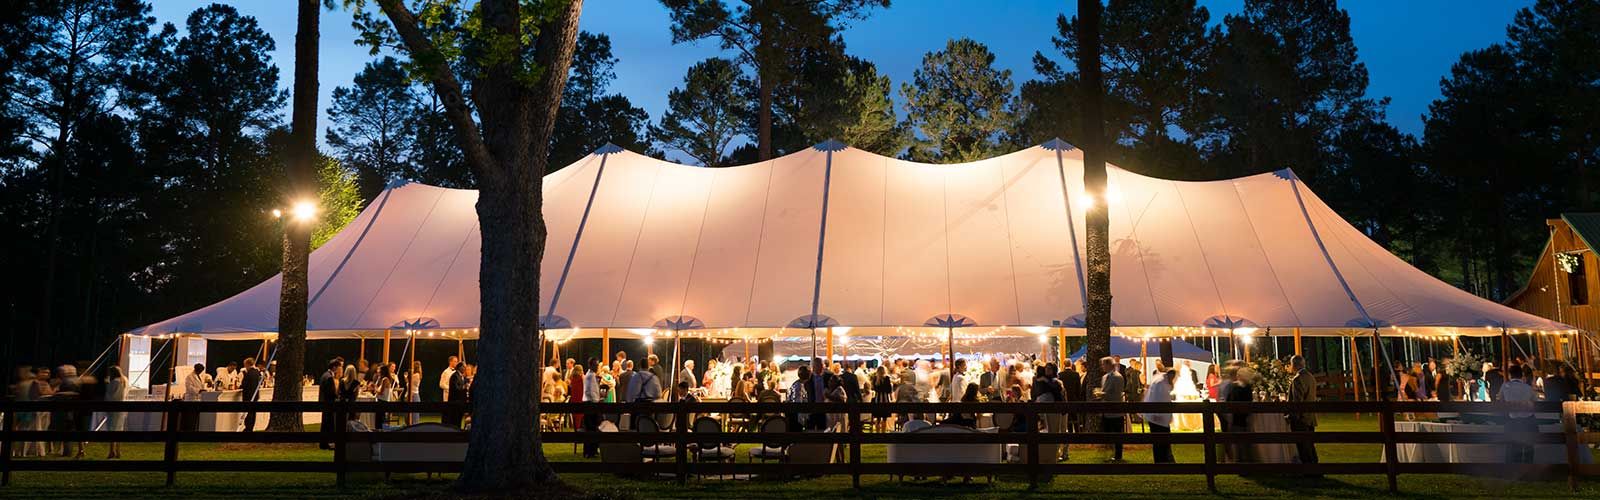 Astonishing Event Rentals In Mobile Al And The Greater Gulf Coast Download Free Architecture Designs Intelgarnamadebymaigaardcom